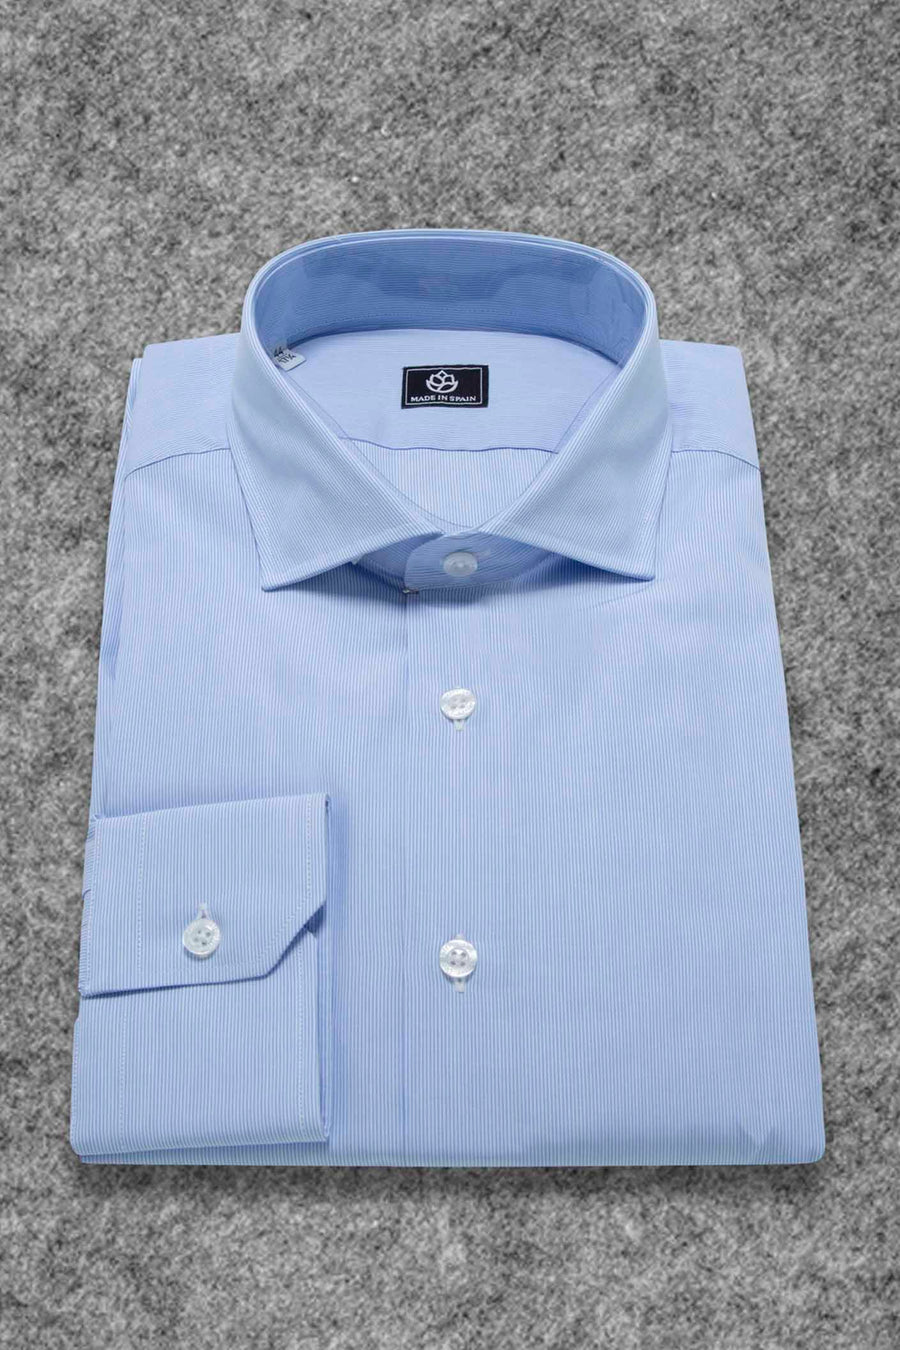 White and Light Blue Micro Striped Dress Shirt WITHOUT Cufflinks